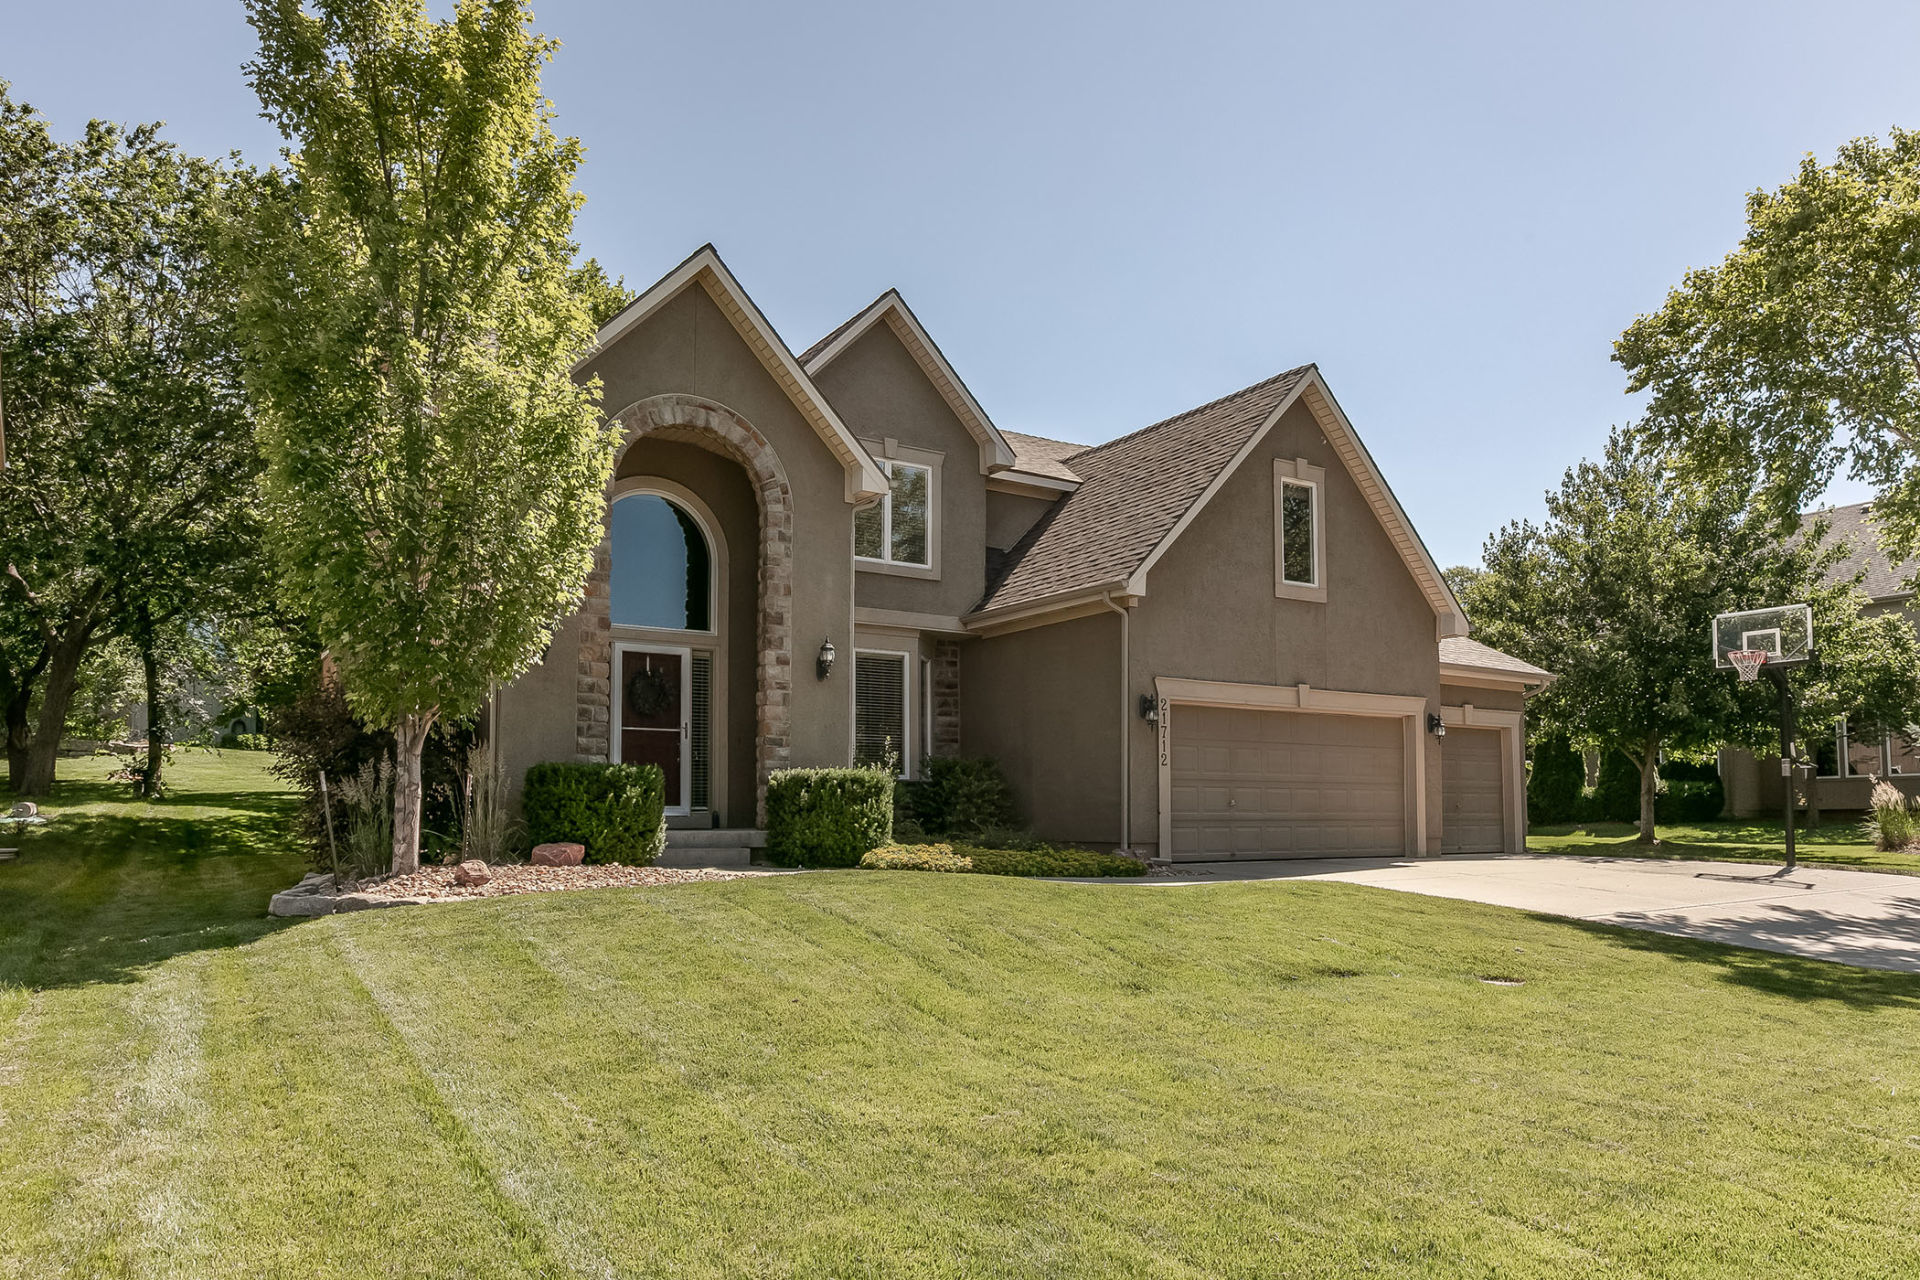 10K PRICE REDUCTION ~ WOW Curb Appeal! Gorgeous Home! Upgrades Galore!